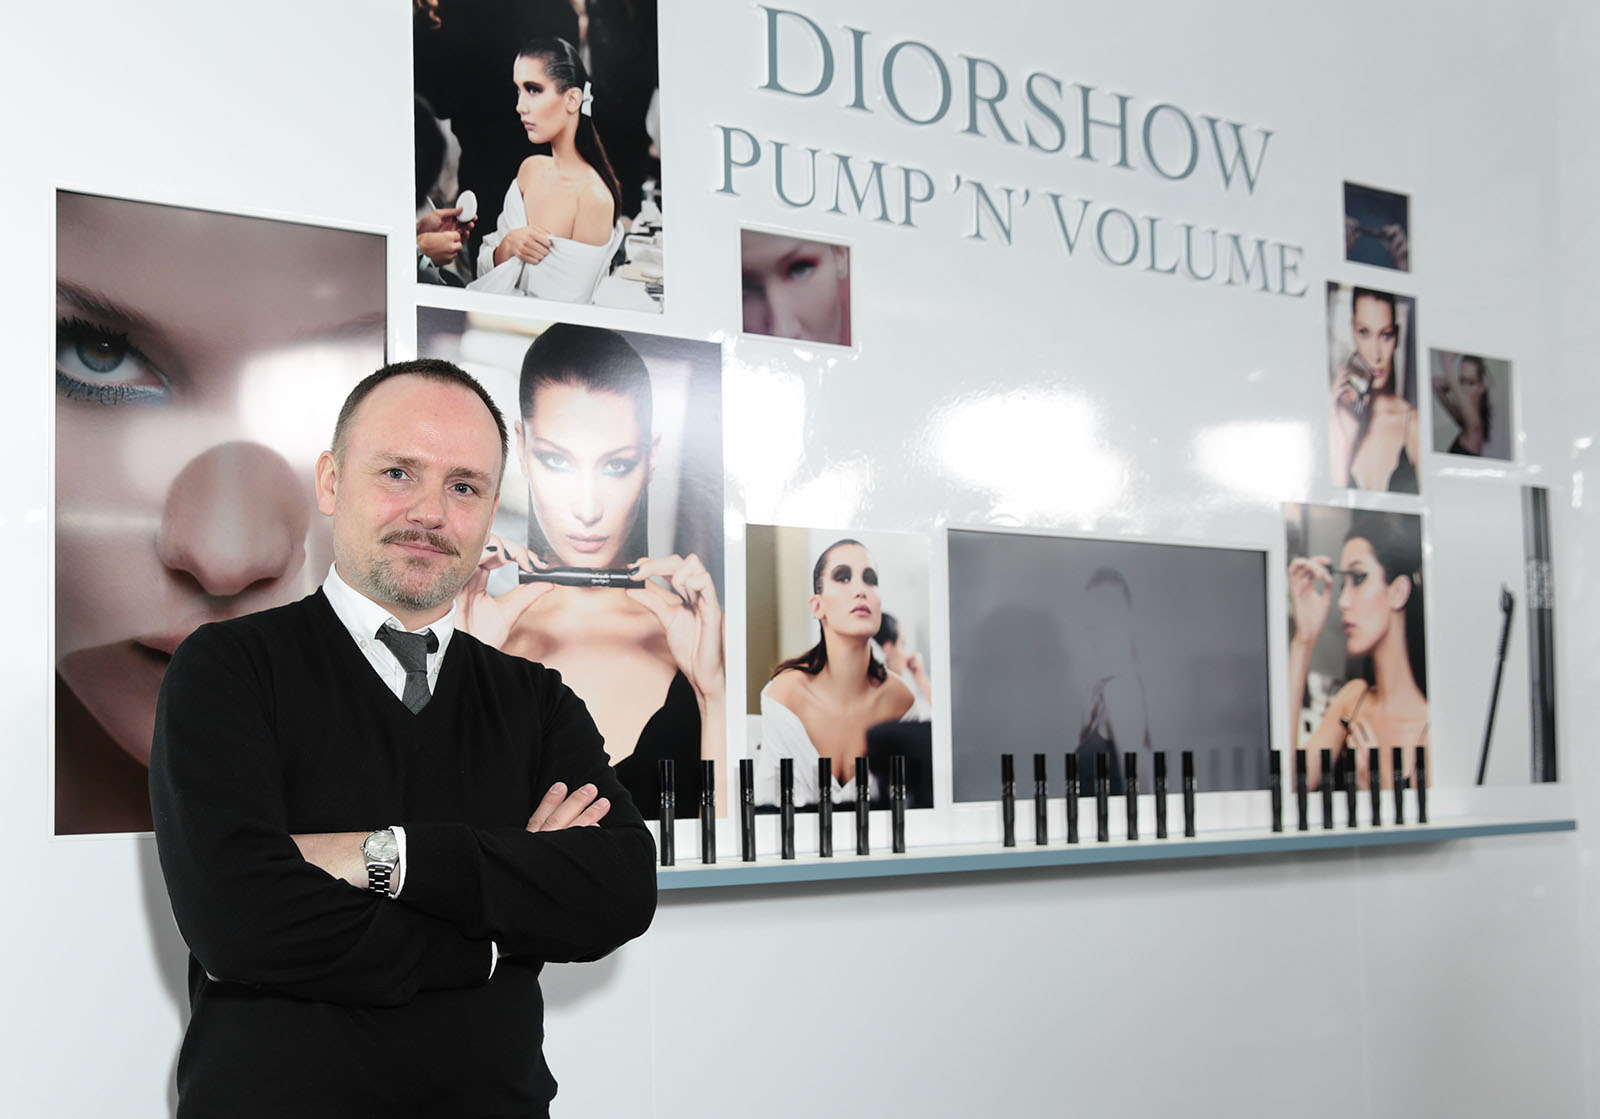 DIOR BACKSTAGE: EVENT IN PARIS